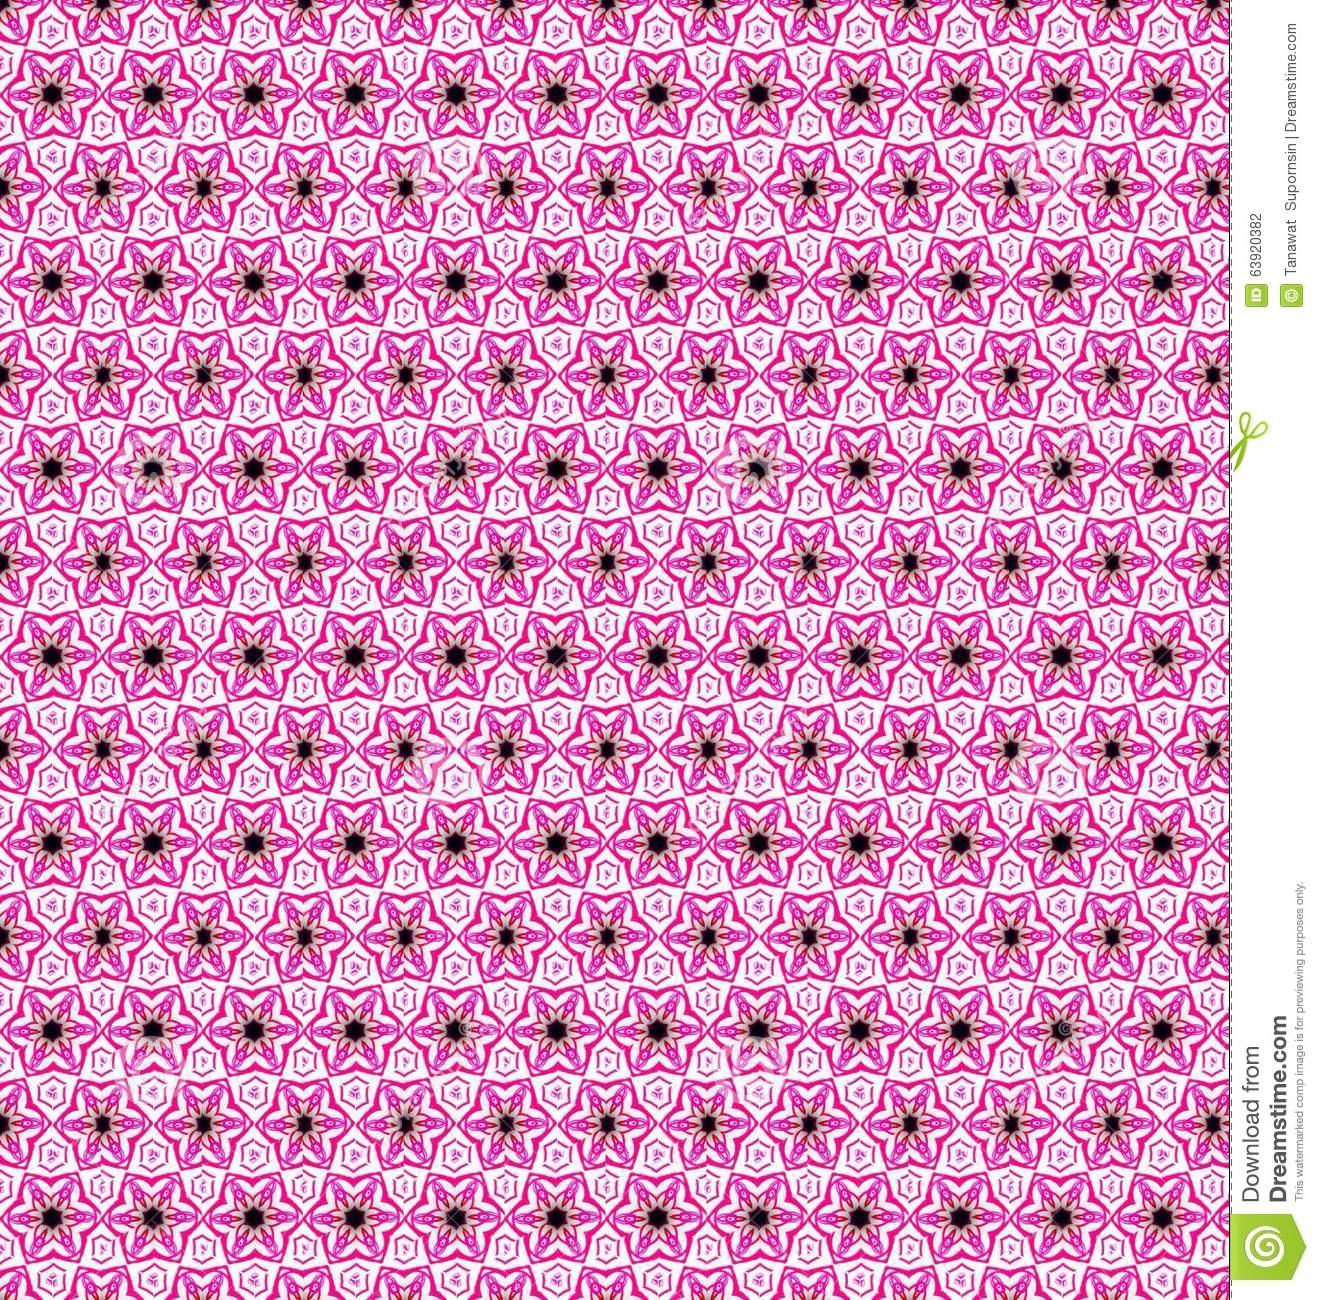 Abstract pink blue white flower wallpaper stock photo image of download abstract pink blue white flower wallpaper stock photo image of line textile mightylinksfo